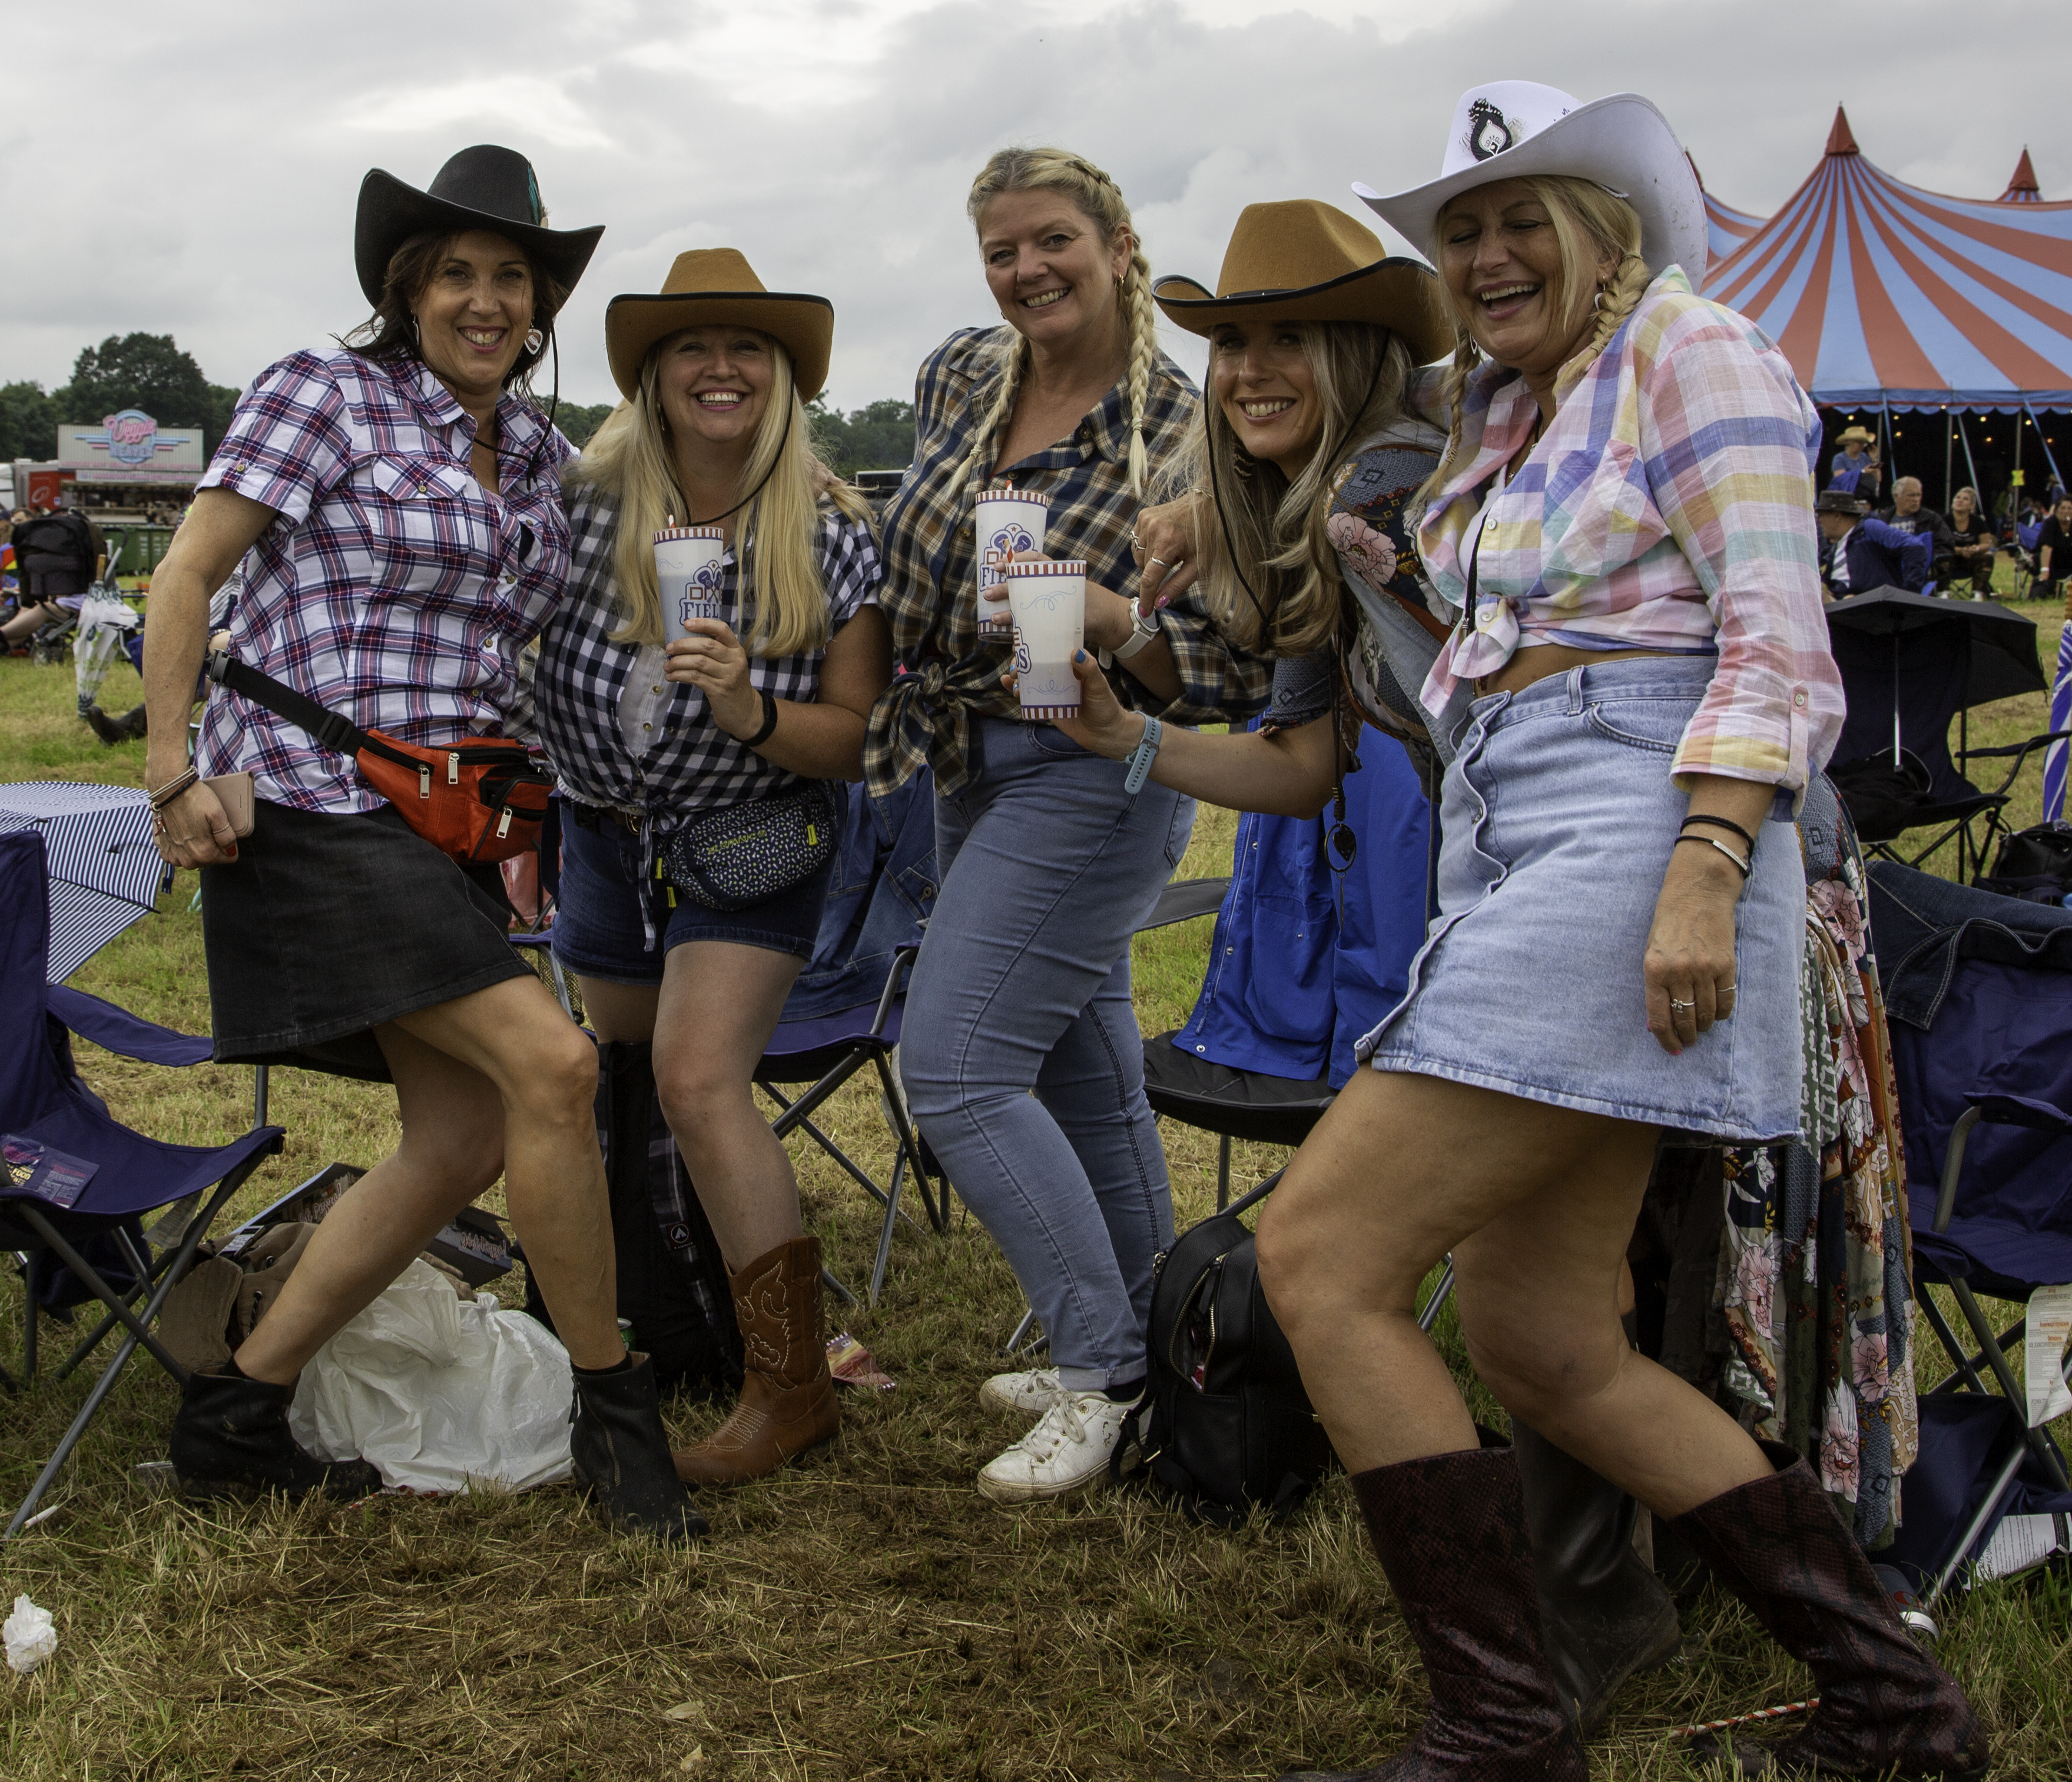 Girl power at Tennessee Fields Festival 2021